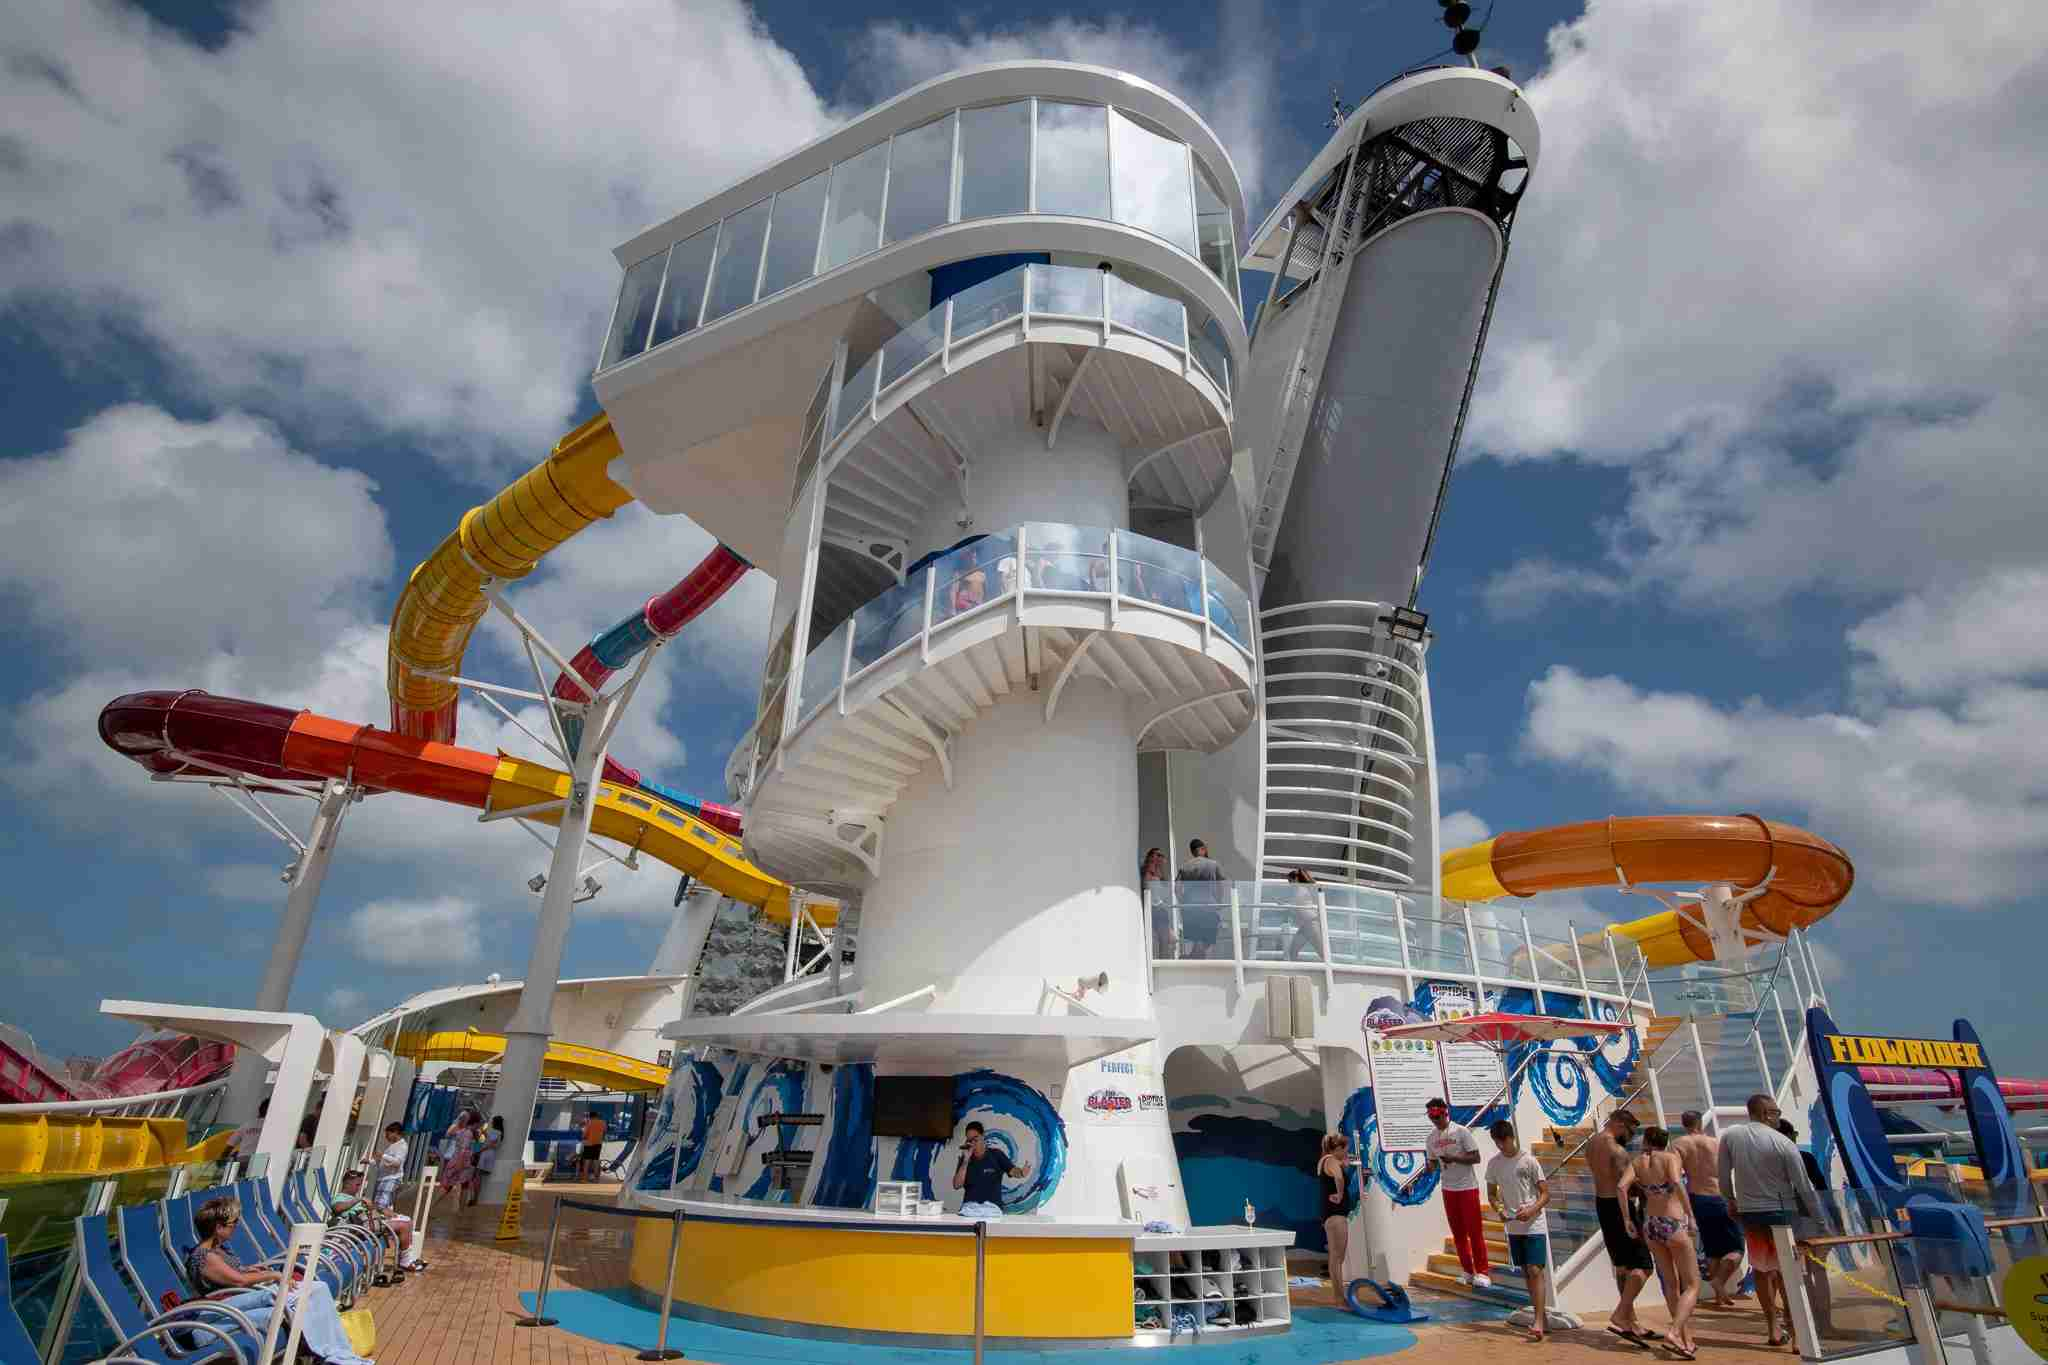 A multideck tower serves as the entryway to the new water slides on Navigator of the Seas. Photo by Gene Sloan / The Points Guy.